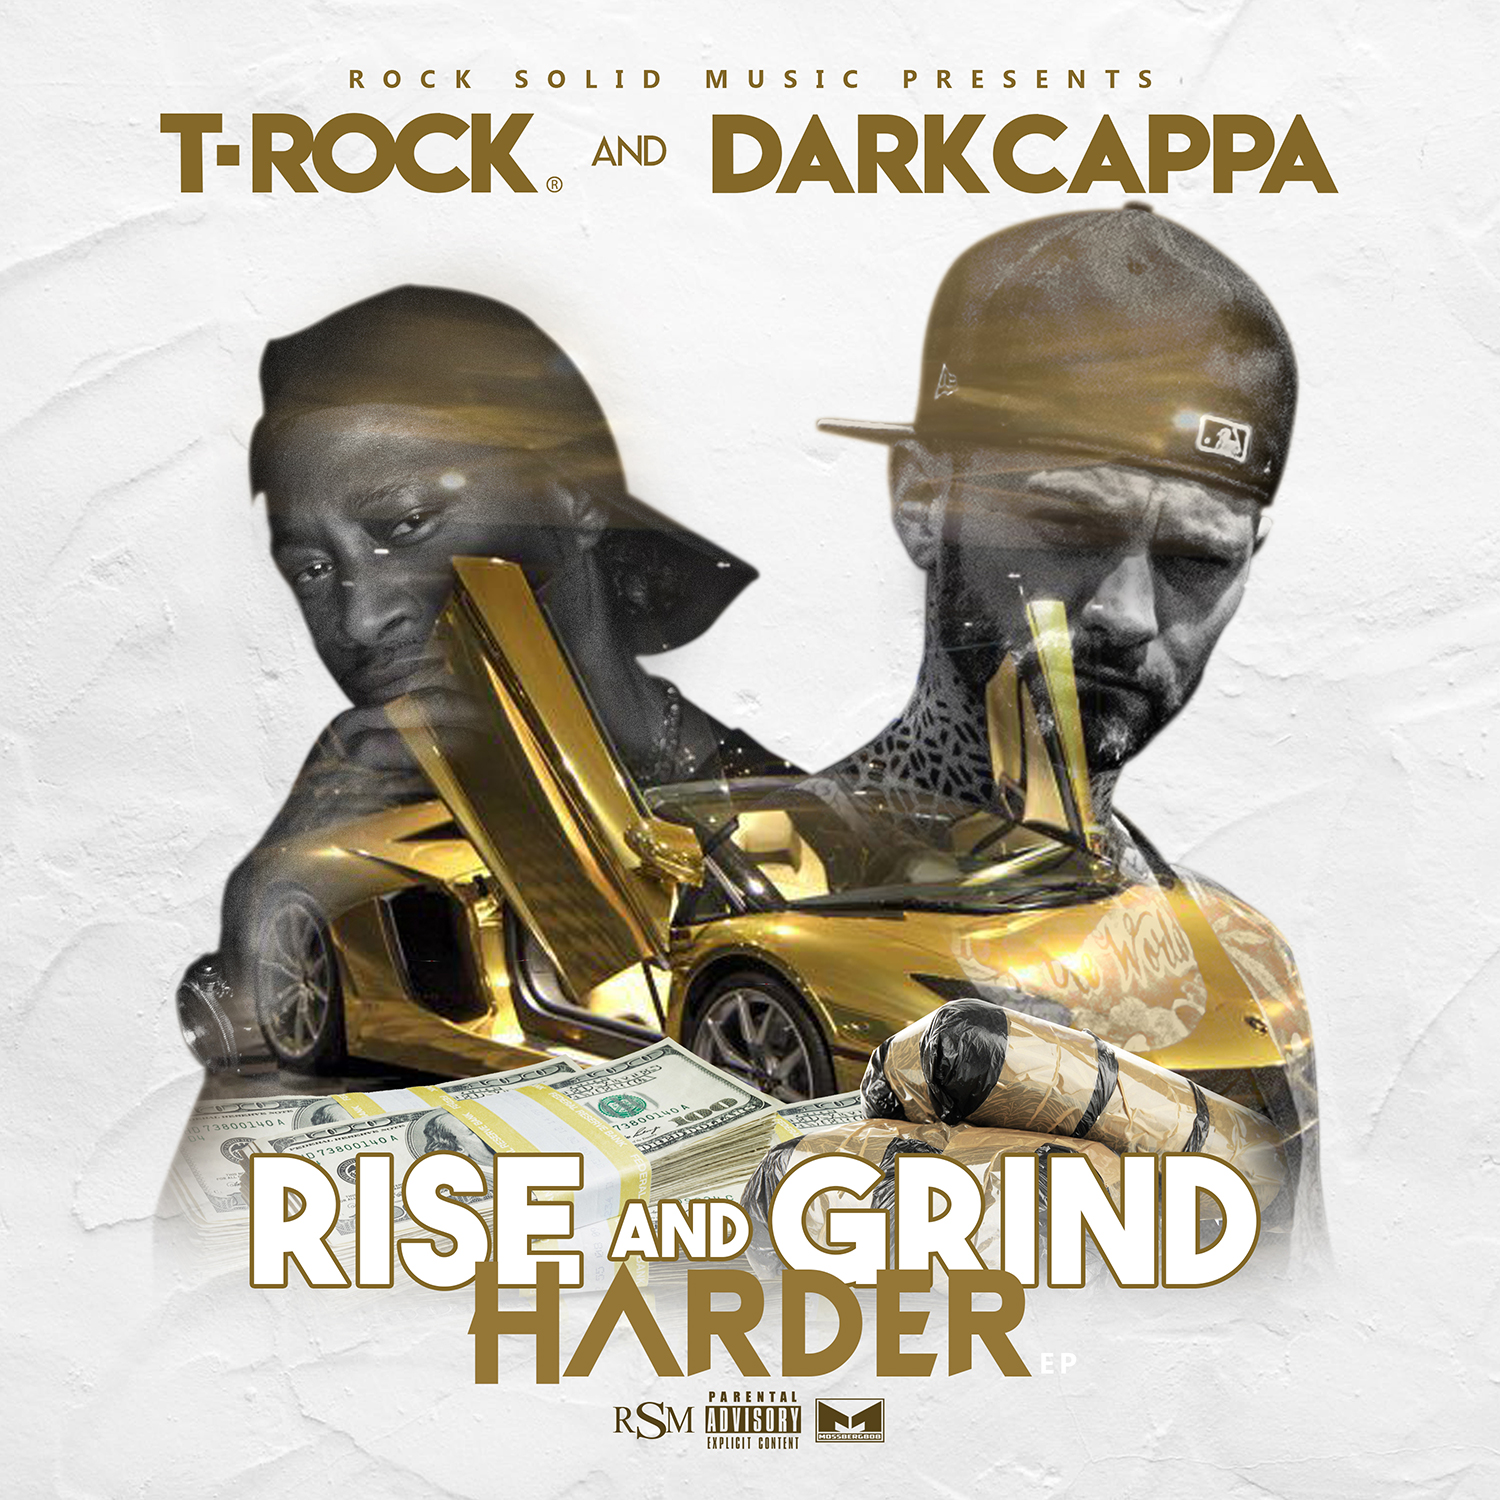 T-Rock & Dark Cappa - Rise and Grind Harder